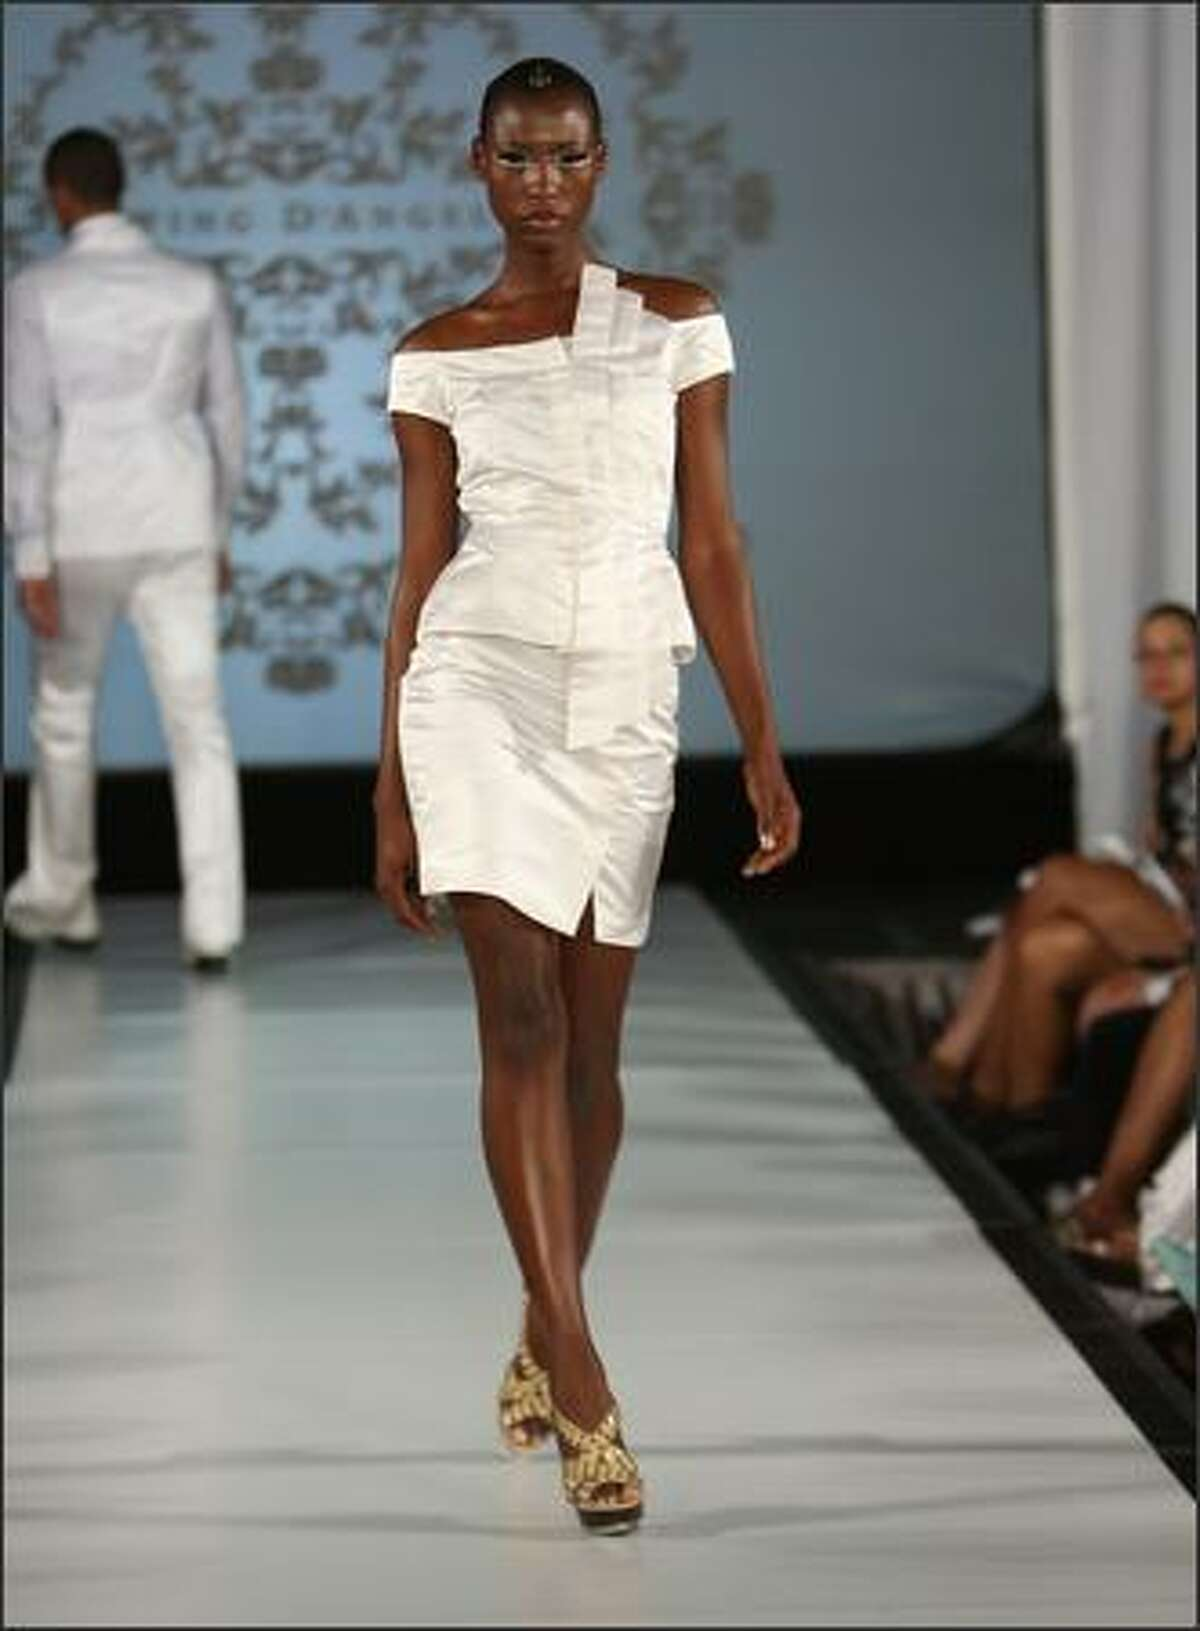 A model walks the runway during the Edwing D'Angelo show.